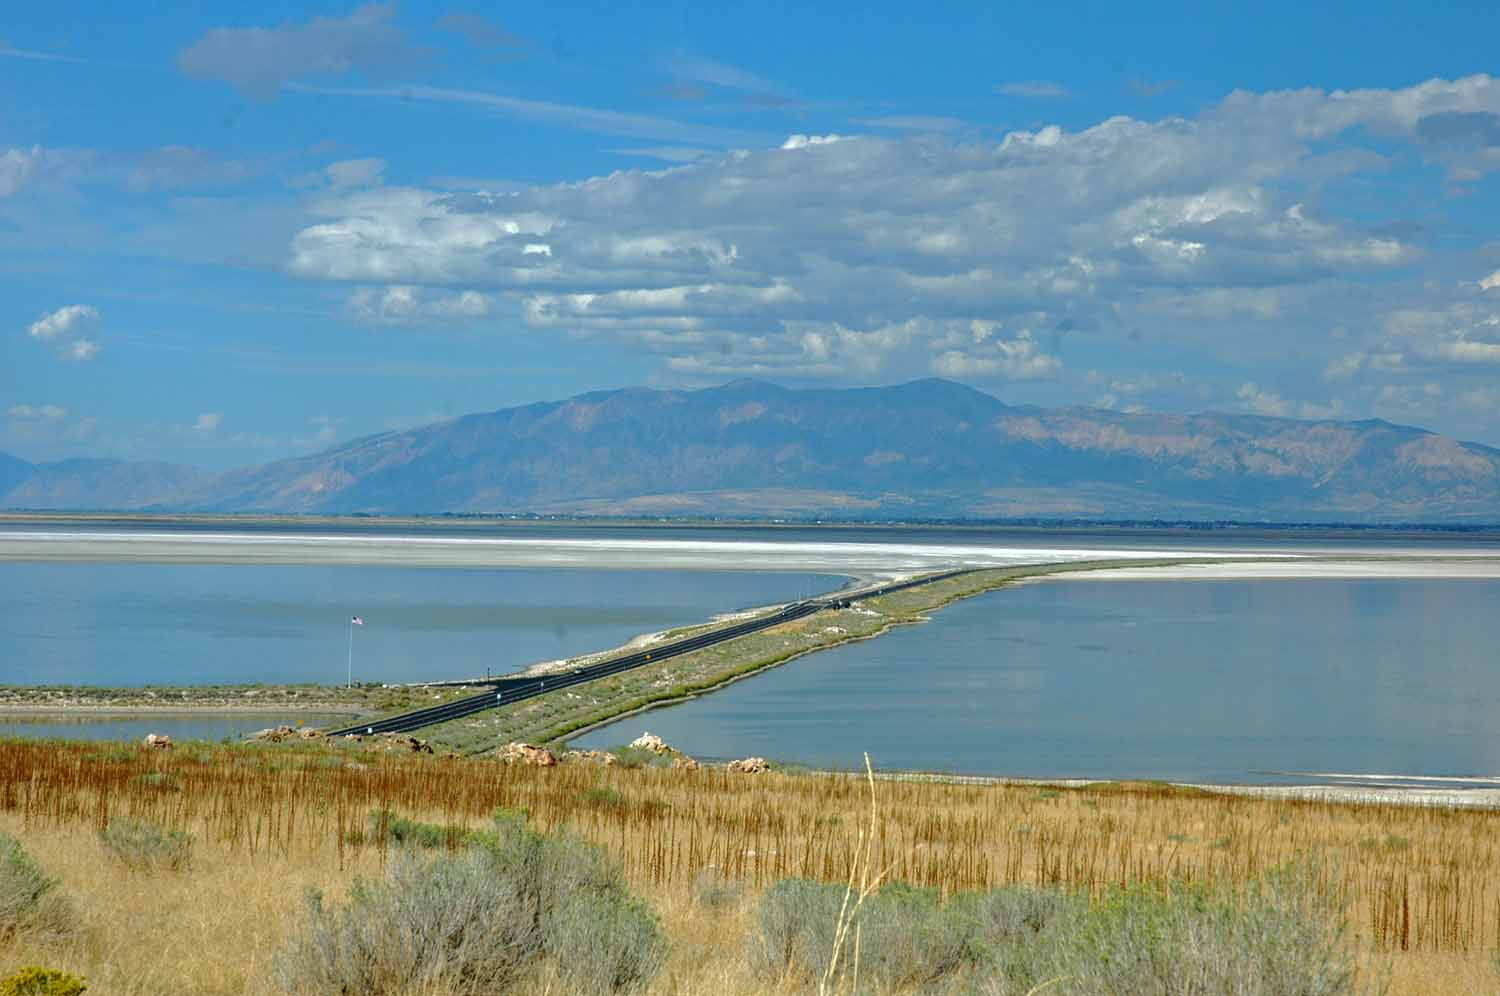 Access to Antelope Island in the Great Salt Lake